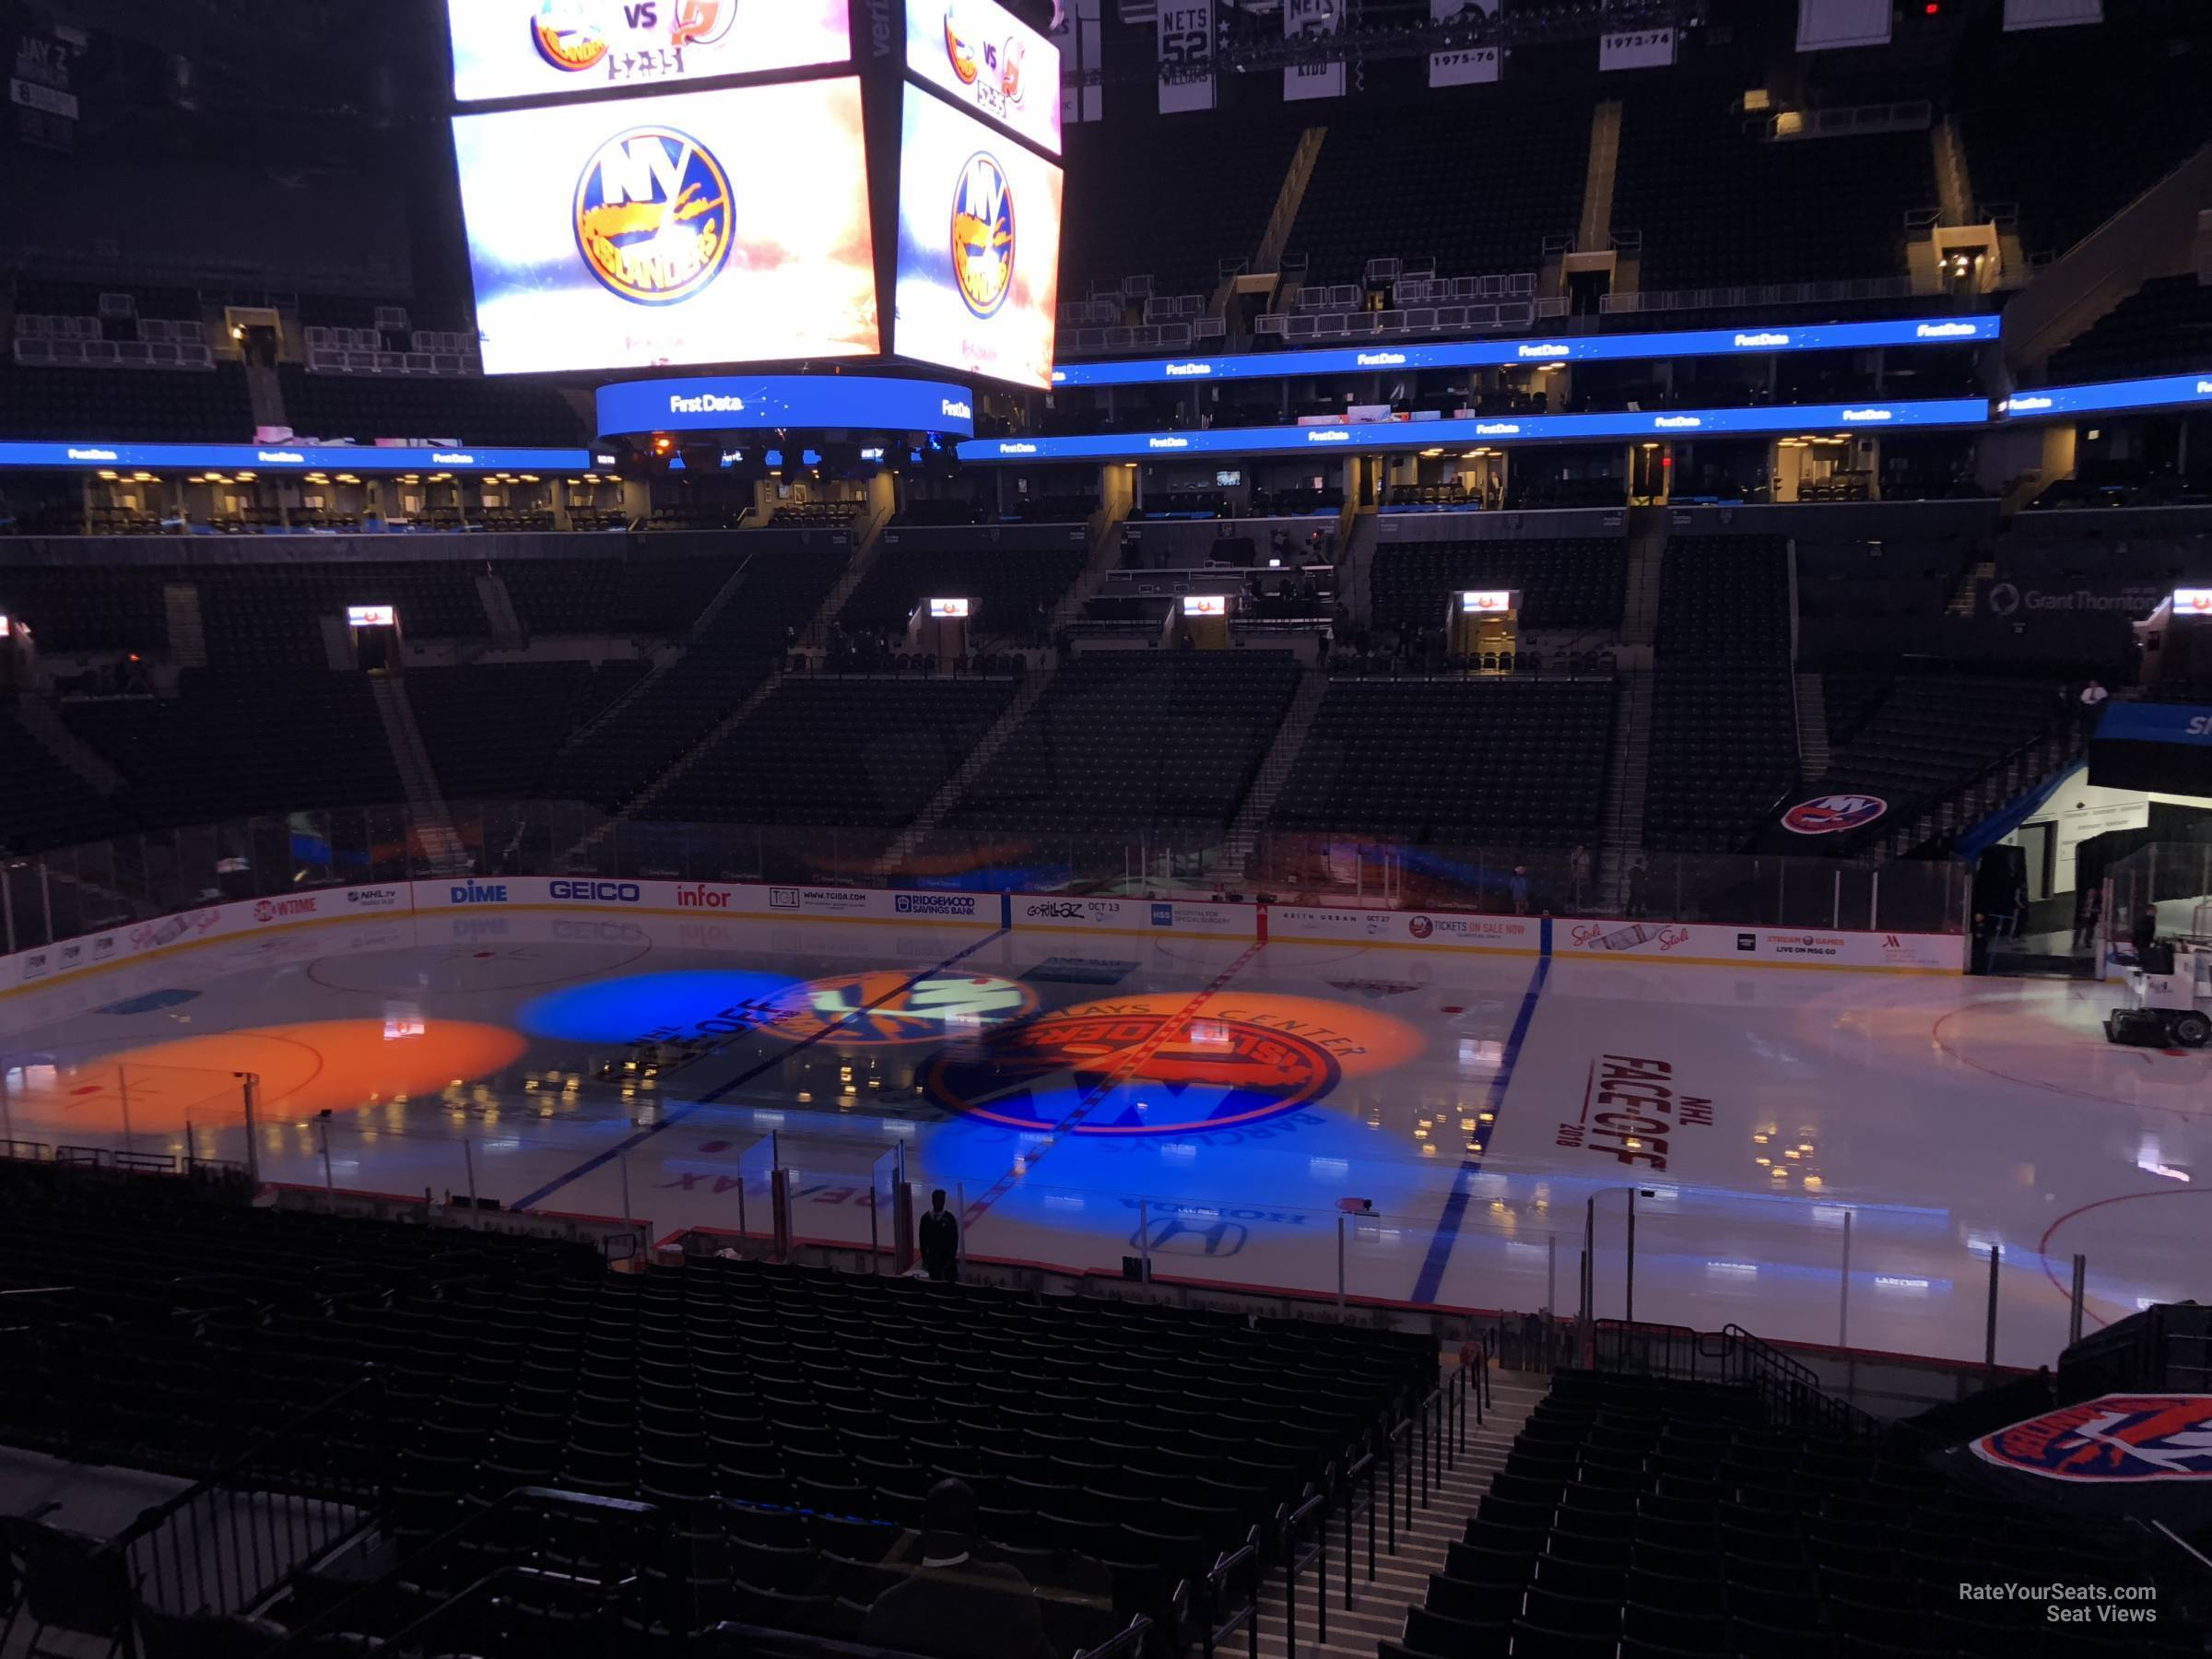 barclays center section 106 - new york islanders - rateyourseats